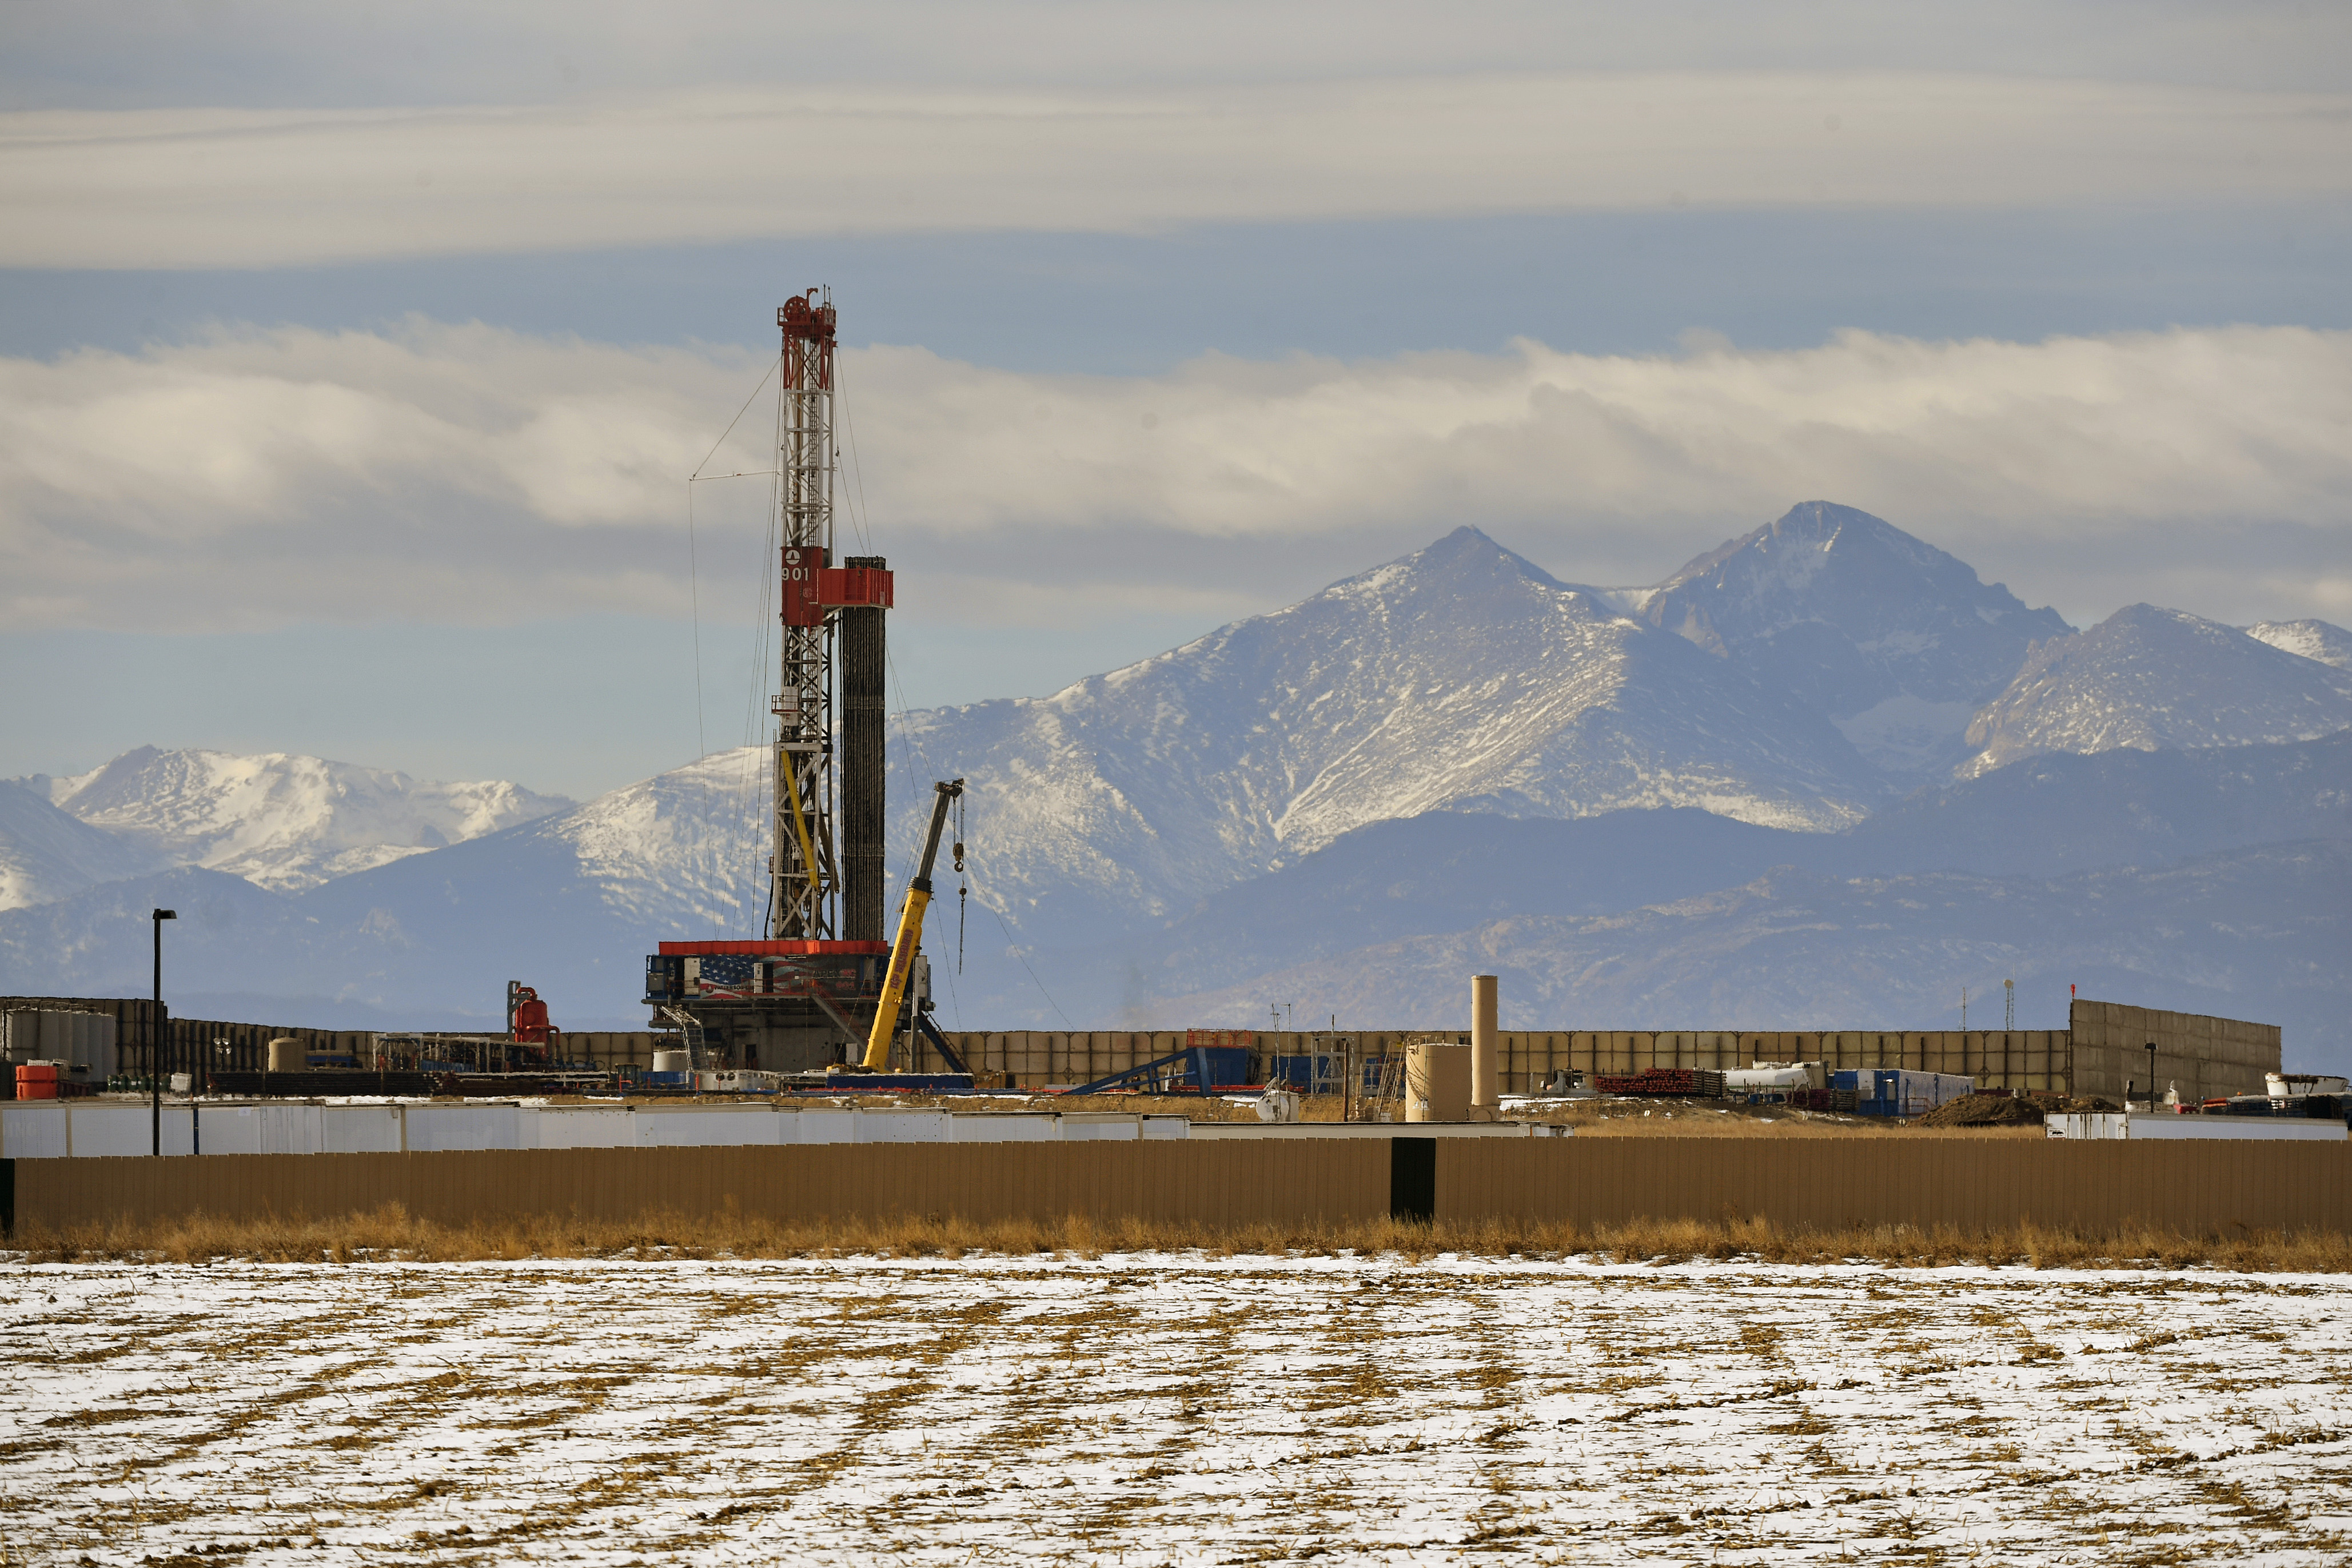 A large fracking operation with mountains looming in the background on December 28, 2017 in Loveland, Colorado.